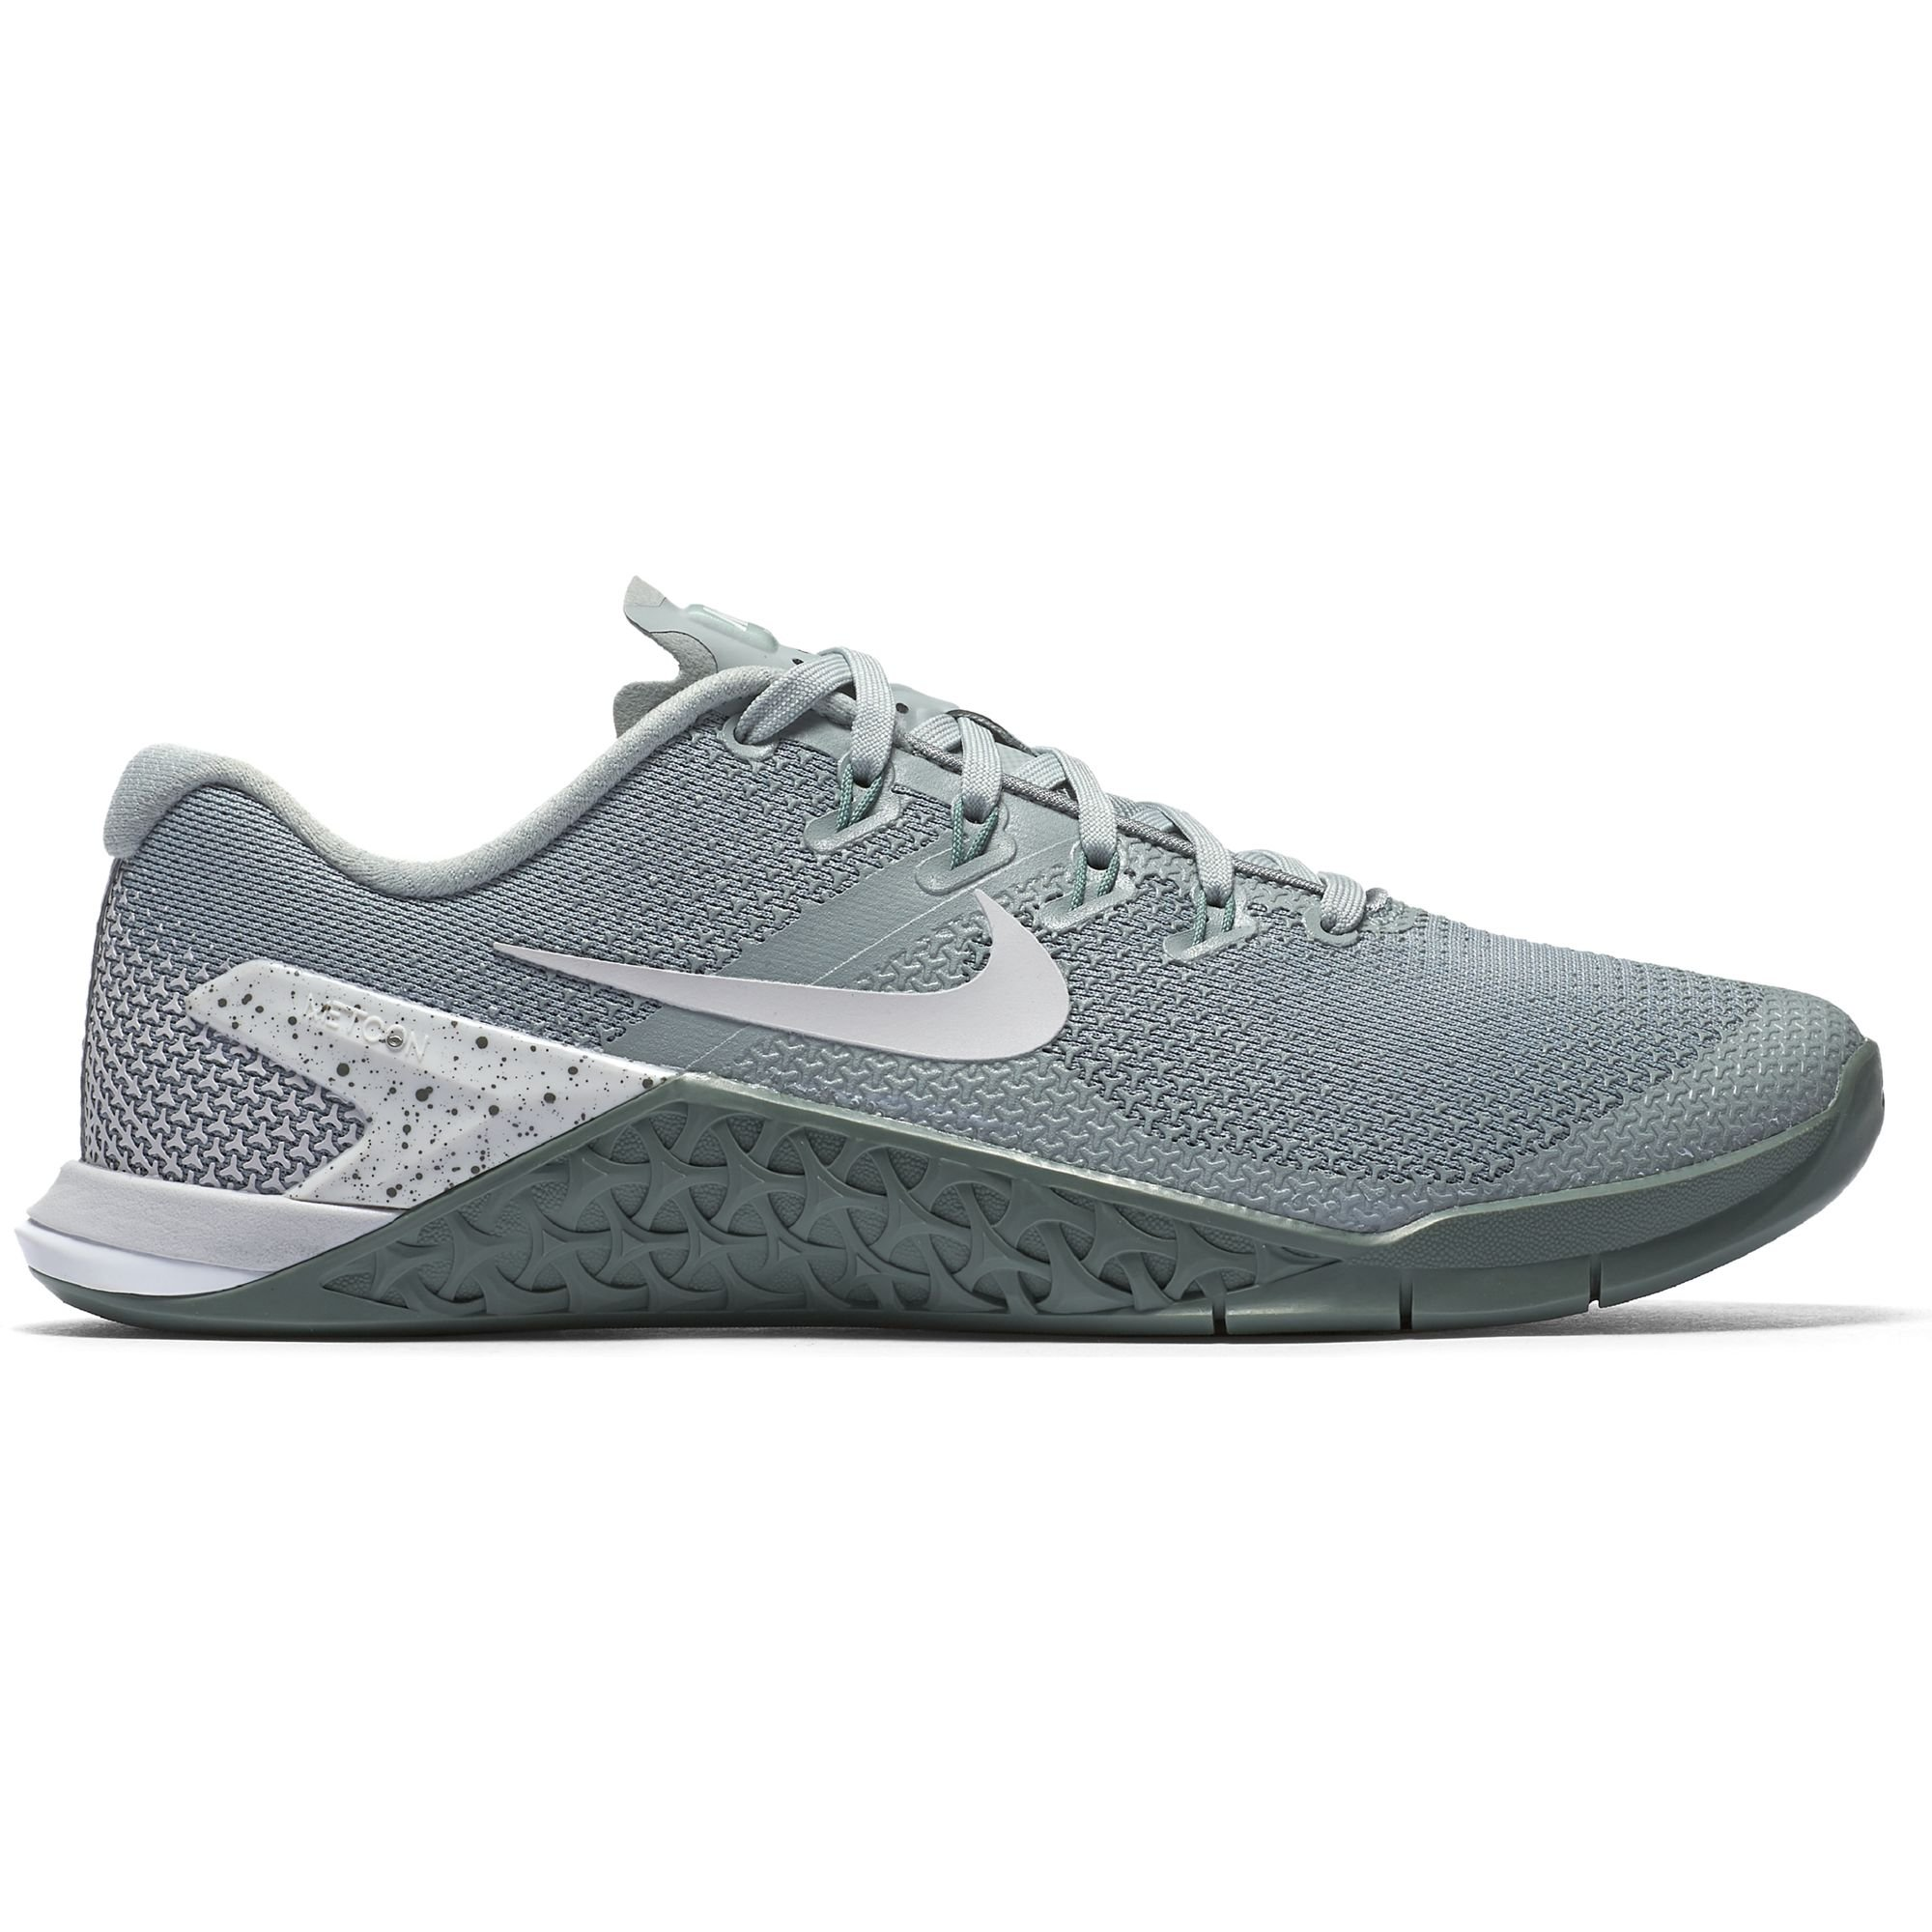 56166d6094b309 Galleon - Nike Women s Metcon 4 Training Shoe Light Pumice Vast Grey Clay  Green White Size 9.5 M US